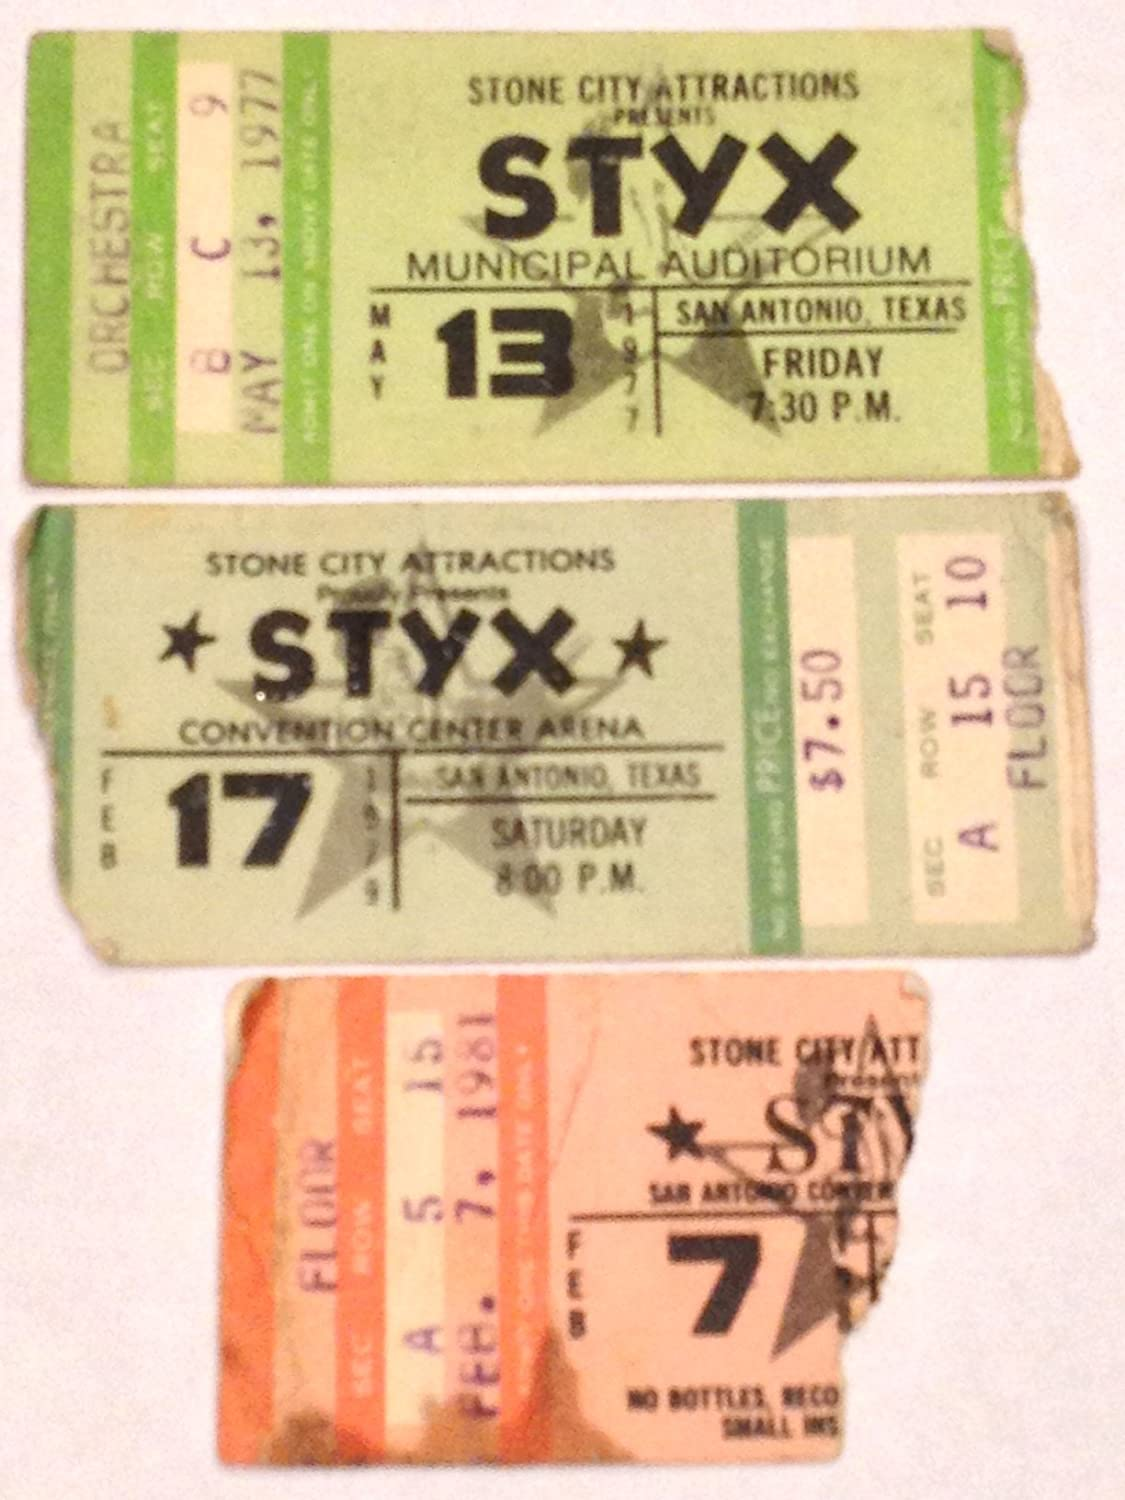 Styx San Antonio, TX 1977 1979 1981 Ticket Stubs Lot of 3 styx shards of darkness ps4 page 3